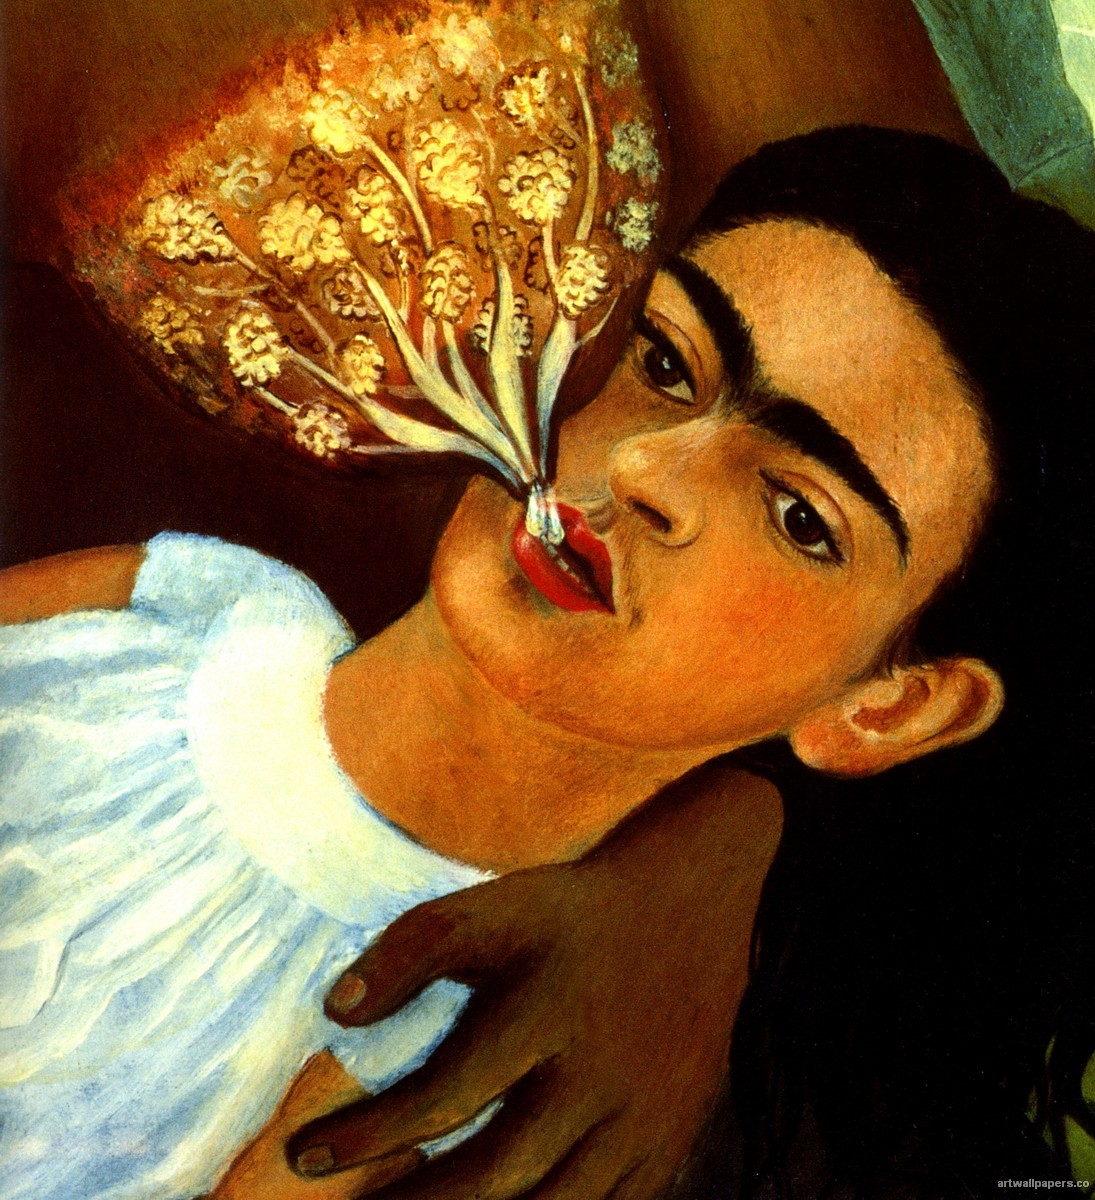 Cuadros De Frida Khalo Frida Kahlo 39s Paintings